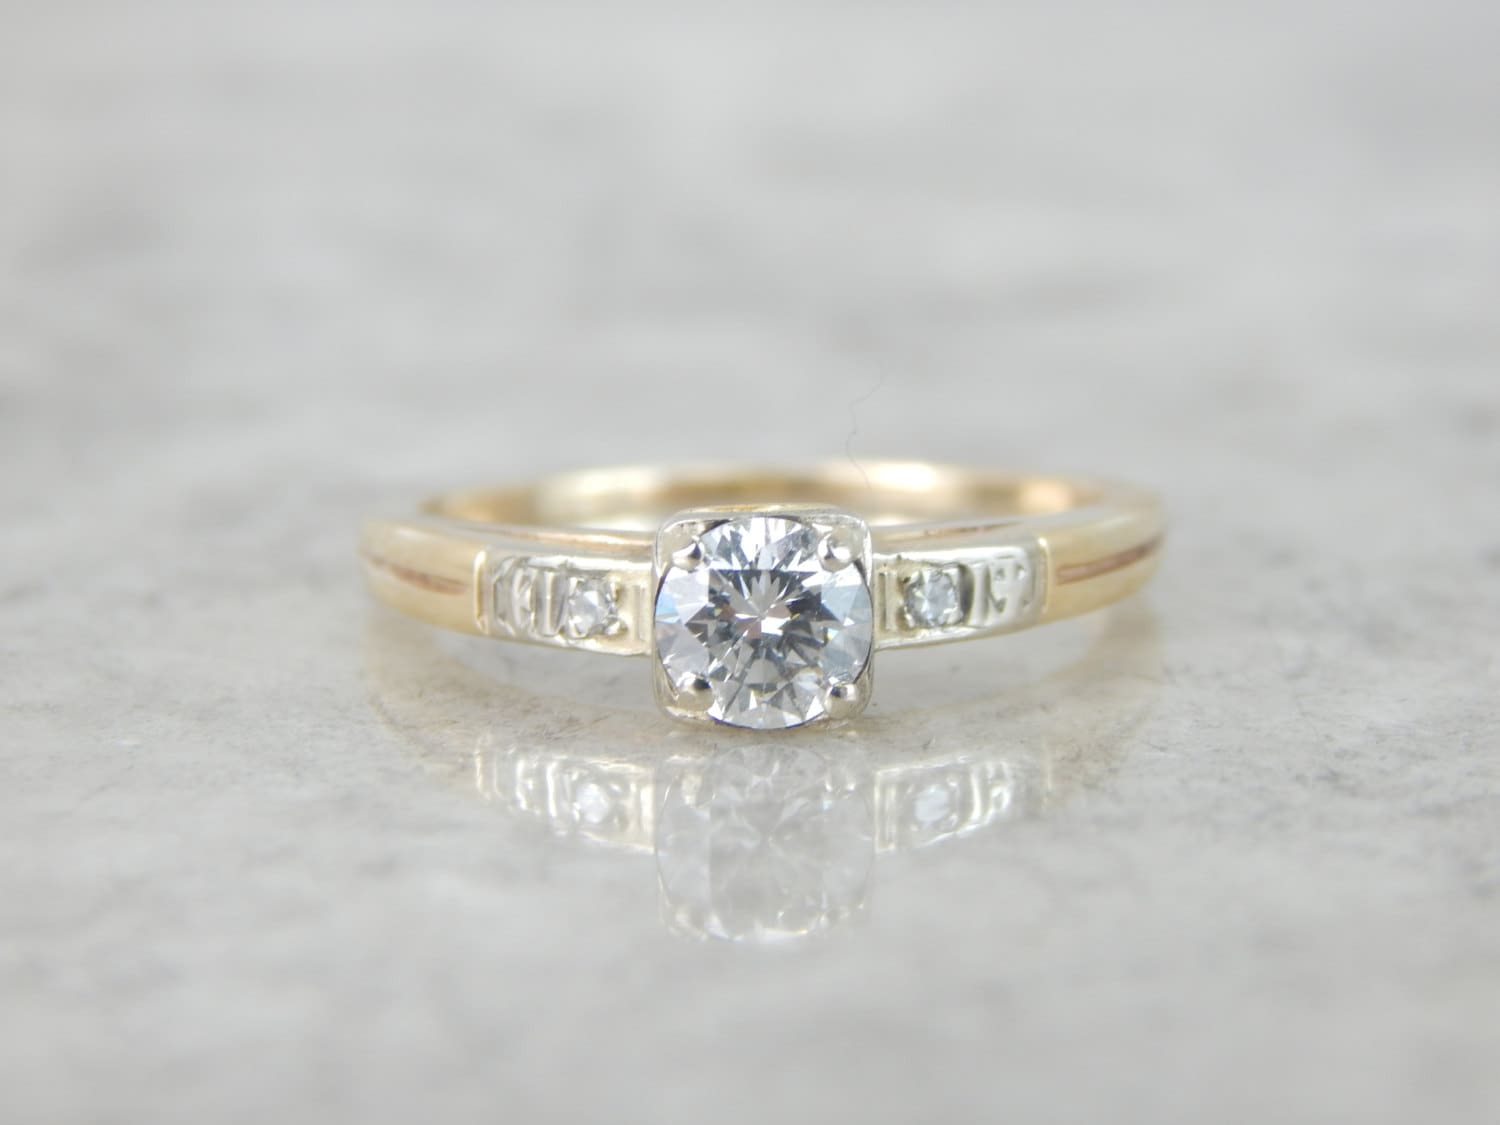 Simple 1940s Vintage Two Tone Diamond Engagement Ring LFE684 P